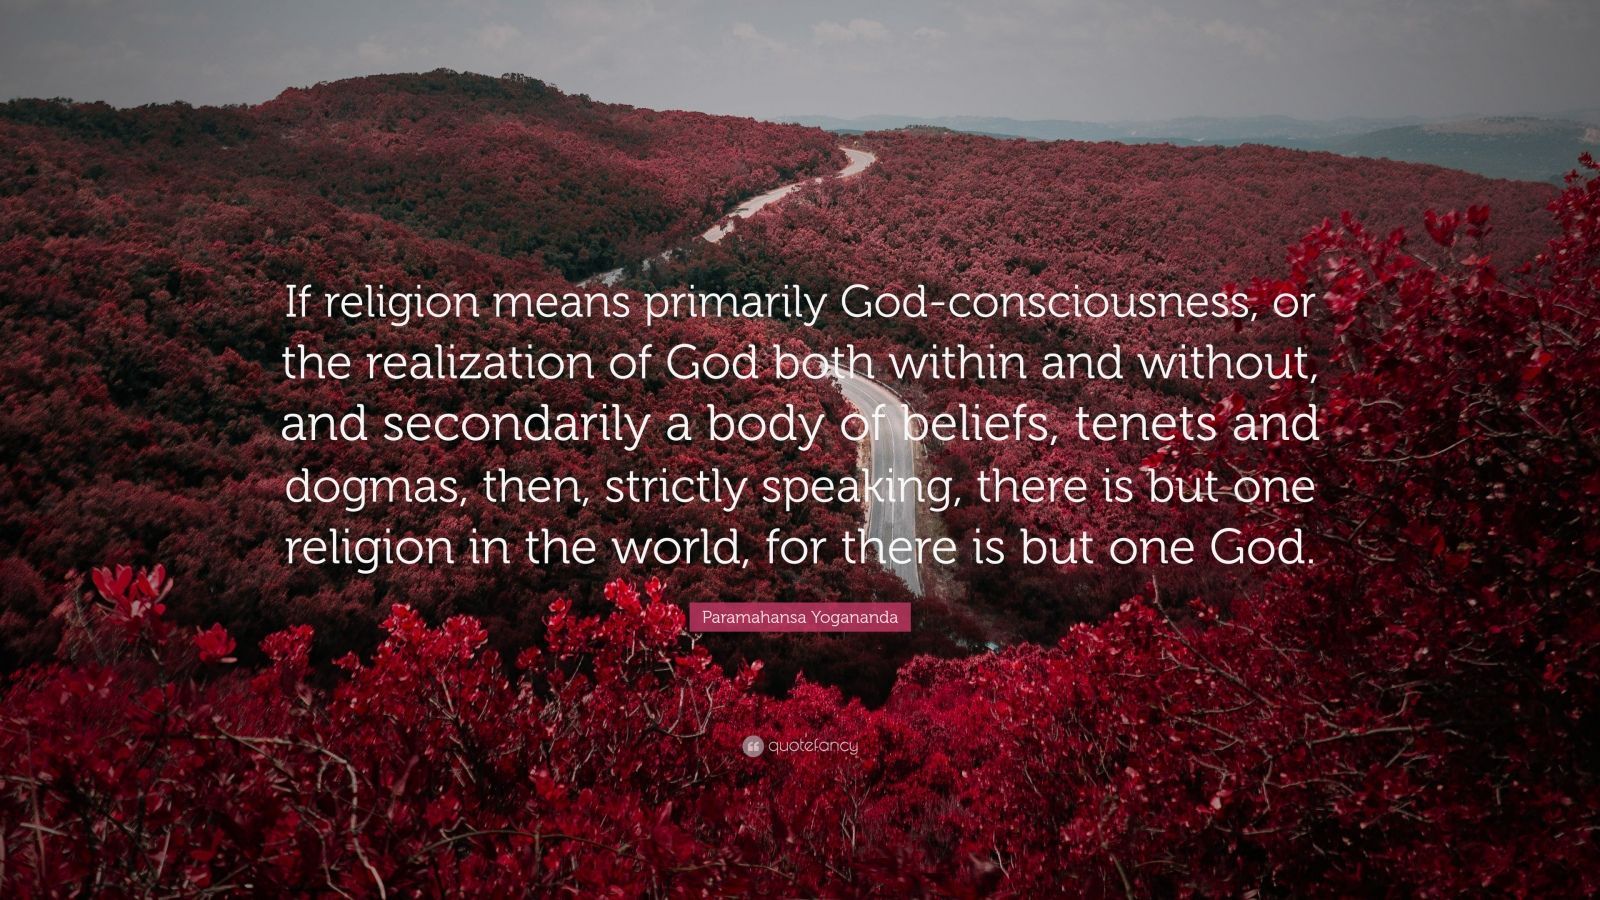 """Paramahansa Yogananda Quote: """"If religion means primarily God-consciousness, or the realization of God both within and without, and secondarily a body of beliefs, tenets and dogmas, then, strictly speaking, there is but one religion in the world, for there is but one God."""""""